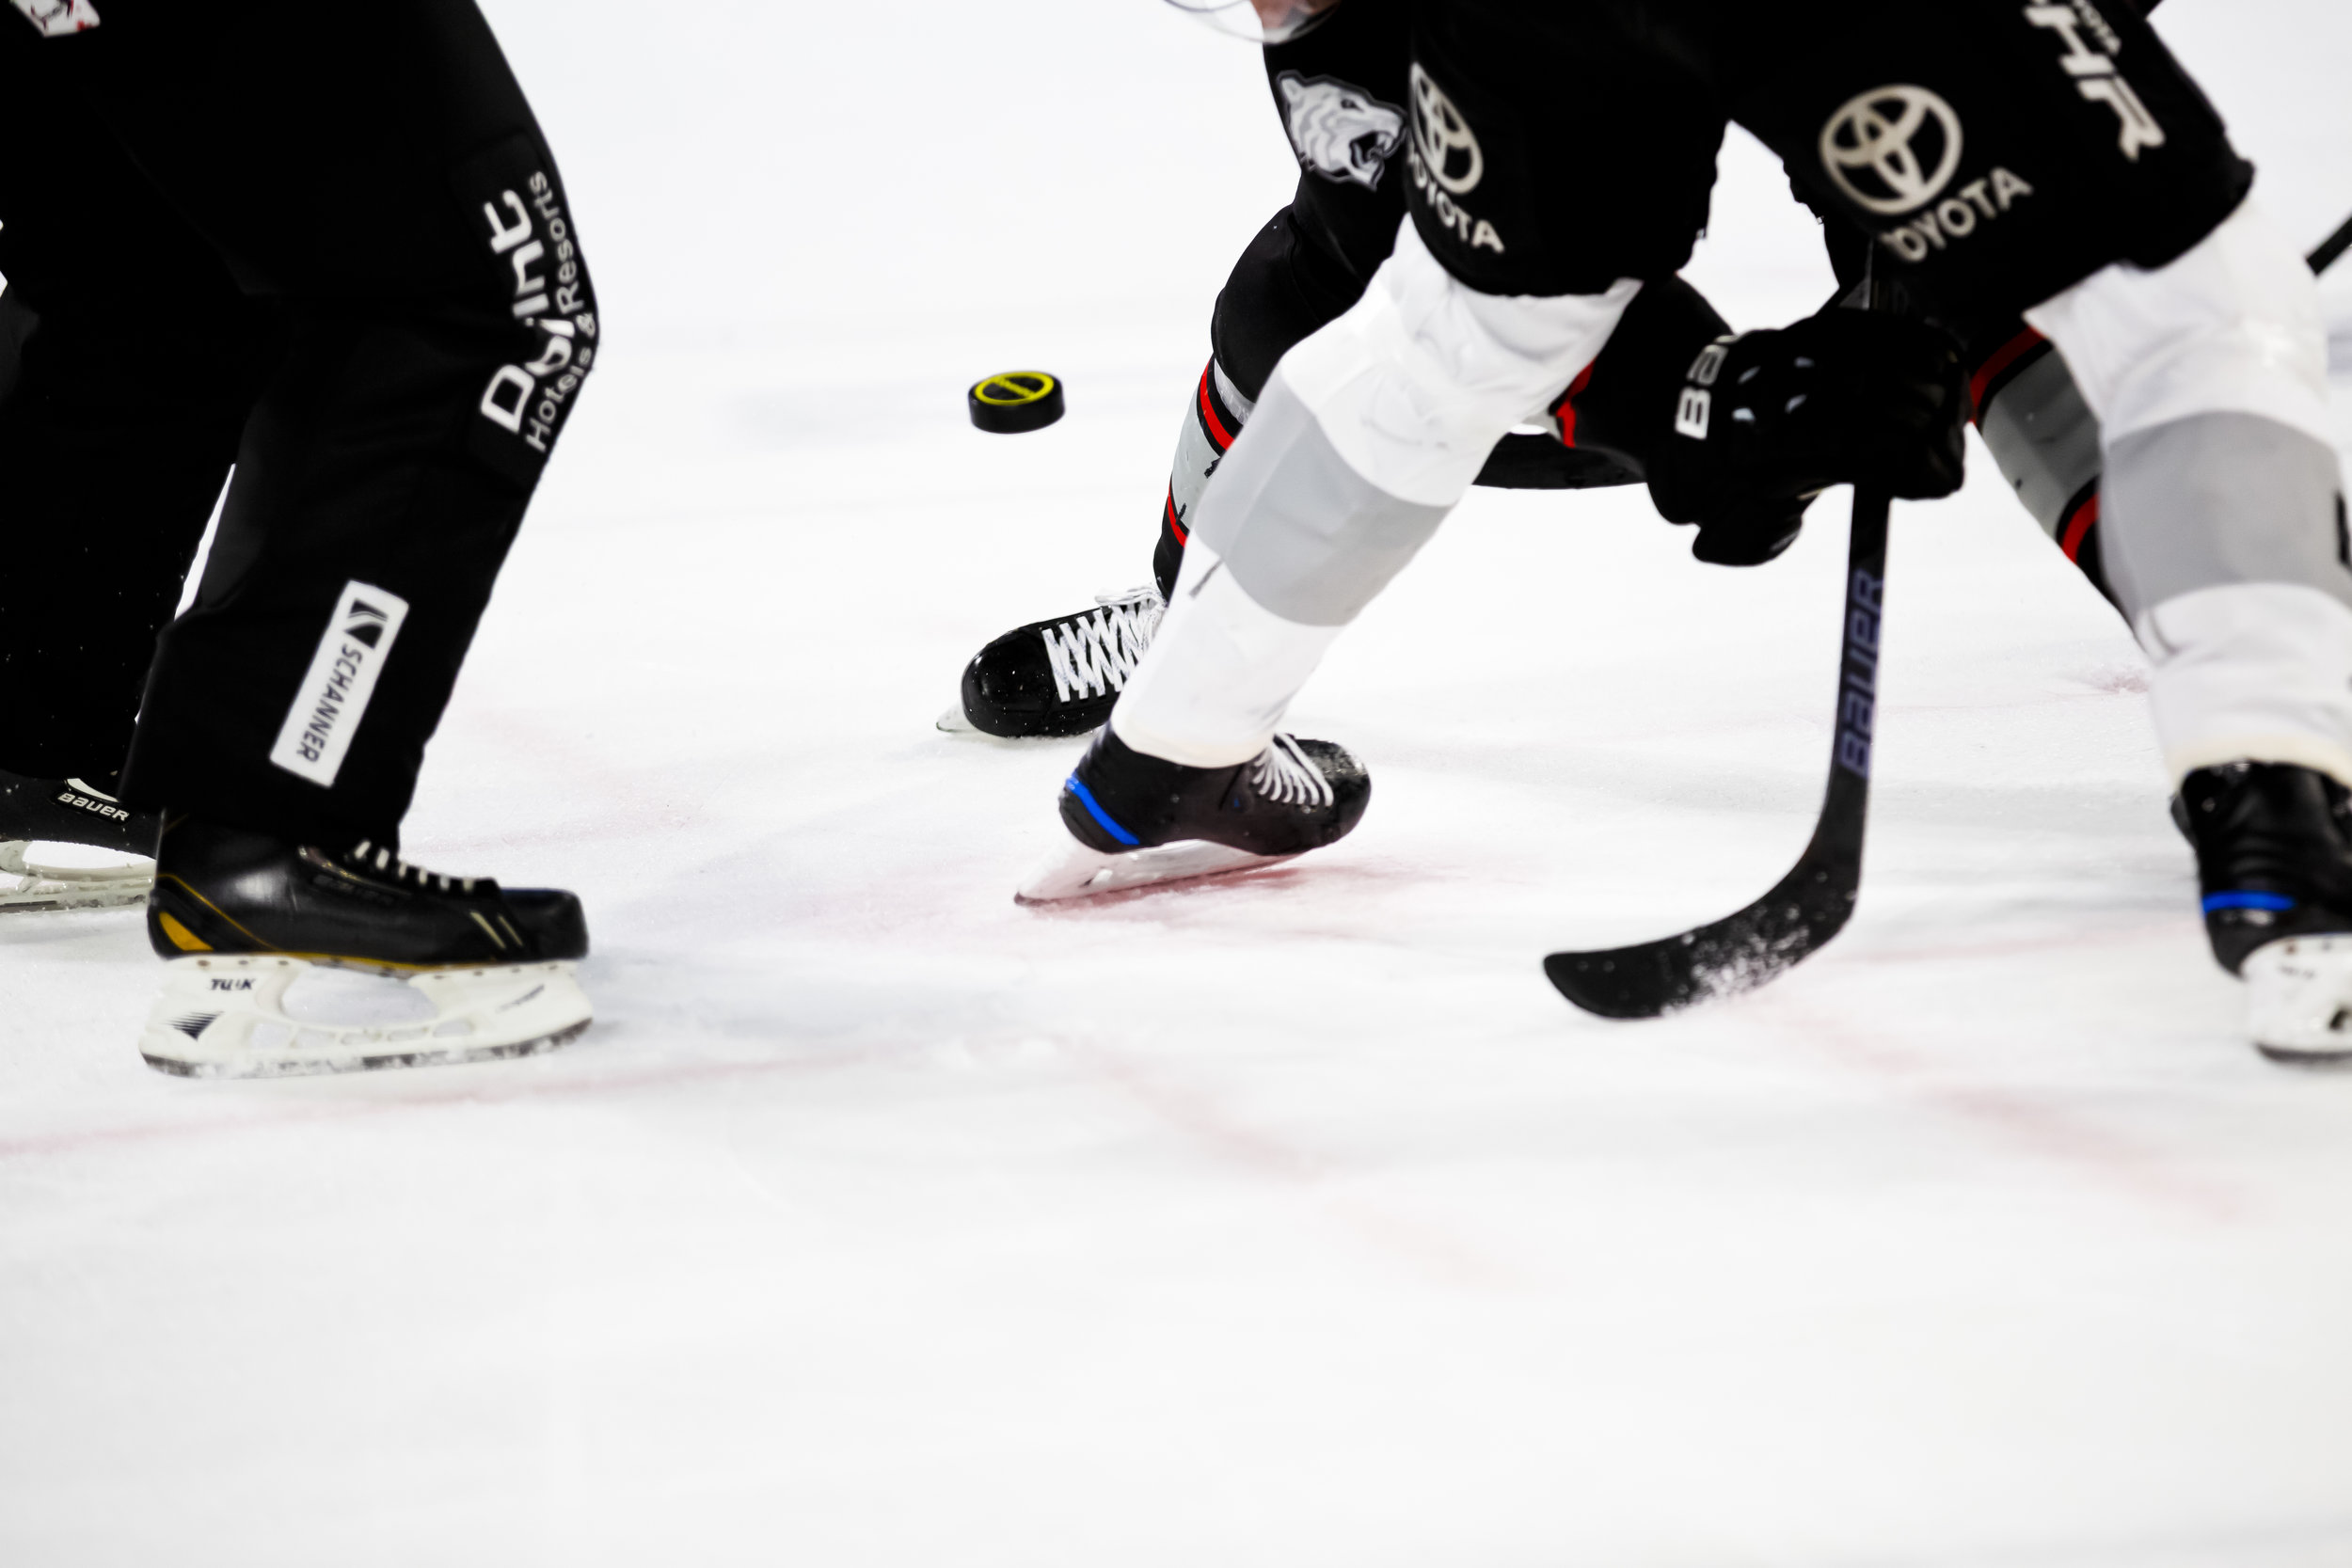 Groin Injury - Preventative groin wrapping is used to accelerate return to play in the rehabilitative stage of injury treatment; however, it is unknown whether it negatively impacts skating performance. We are examining the effect of standard groin wrapping on sprint and agility in ice hockey players.